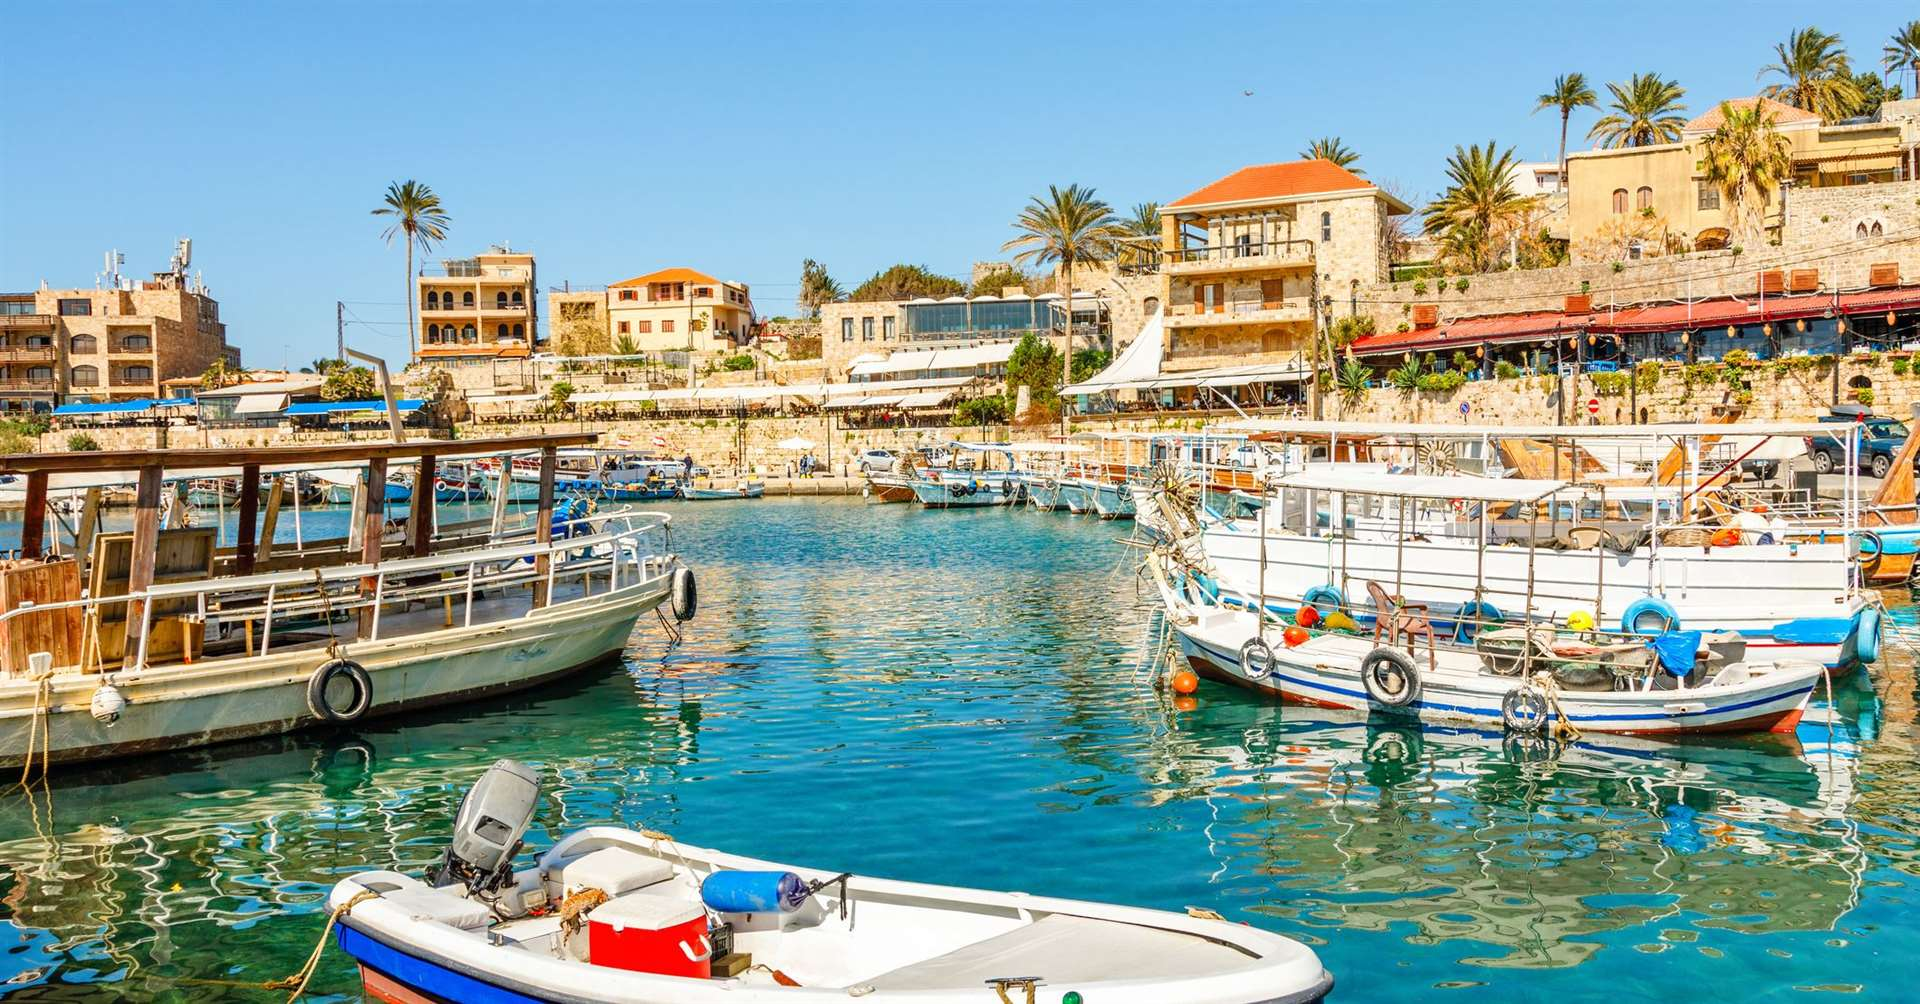 Byblos in Lebanon is said to be one of the oldest continuously inhabited cities in the world.